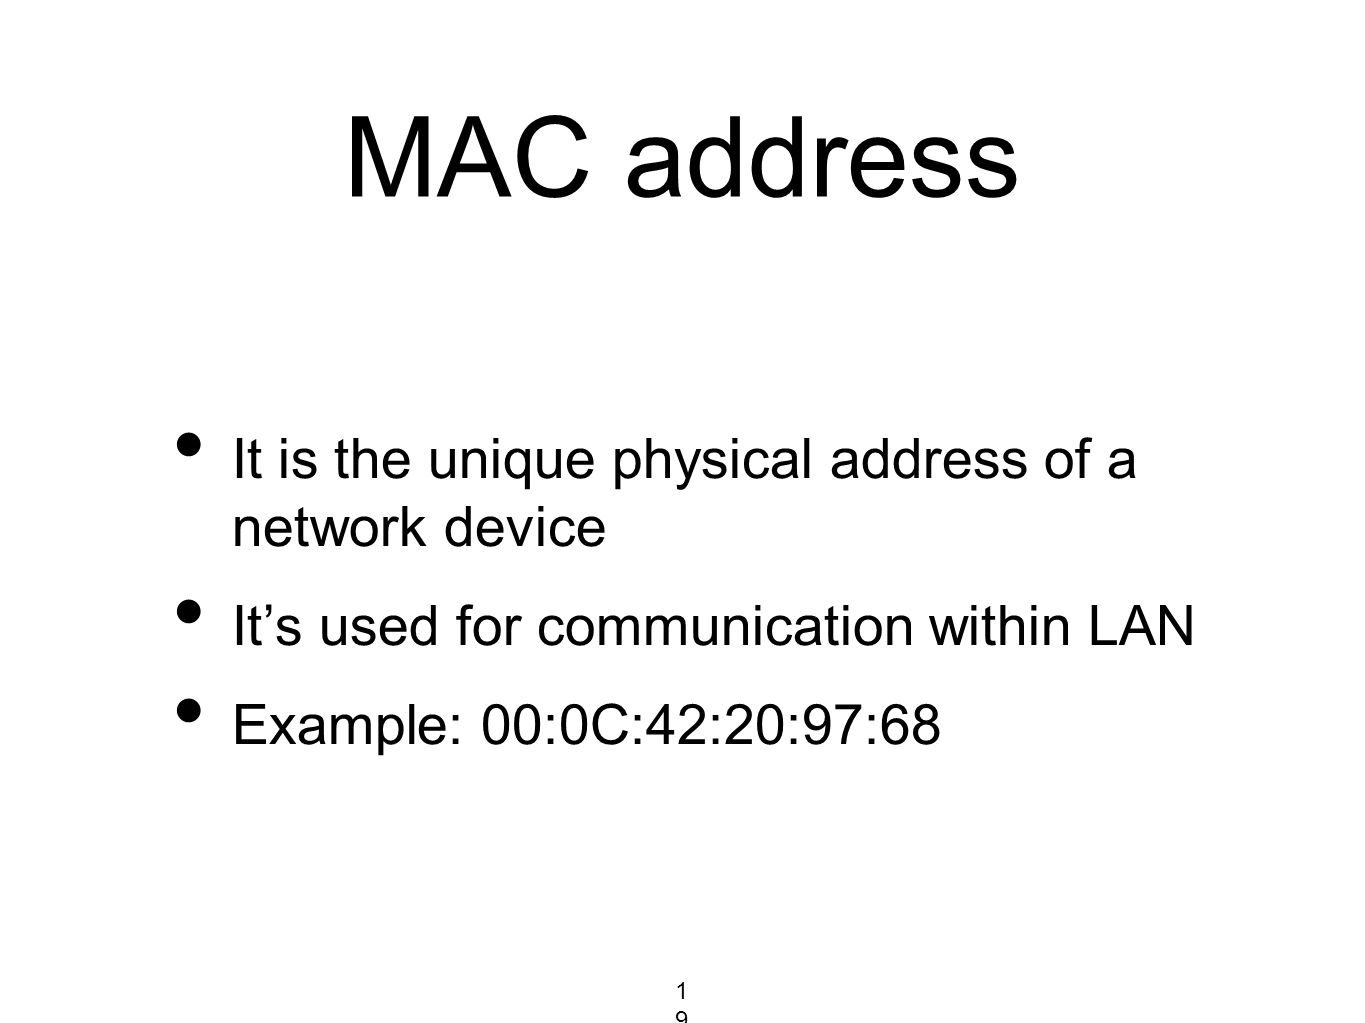 MAC address It is the unique physical address of a network device It's used for communication within LAN Example: 00:0C:42:20:97:68 19